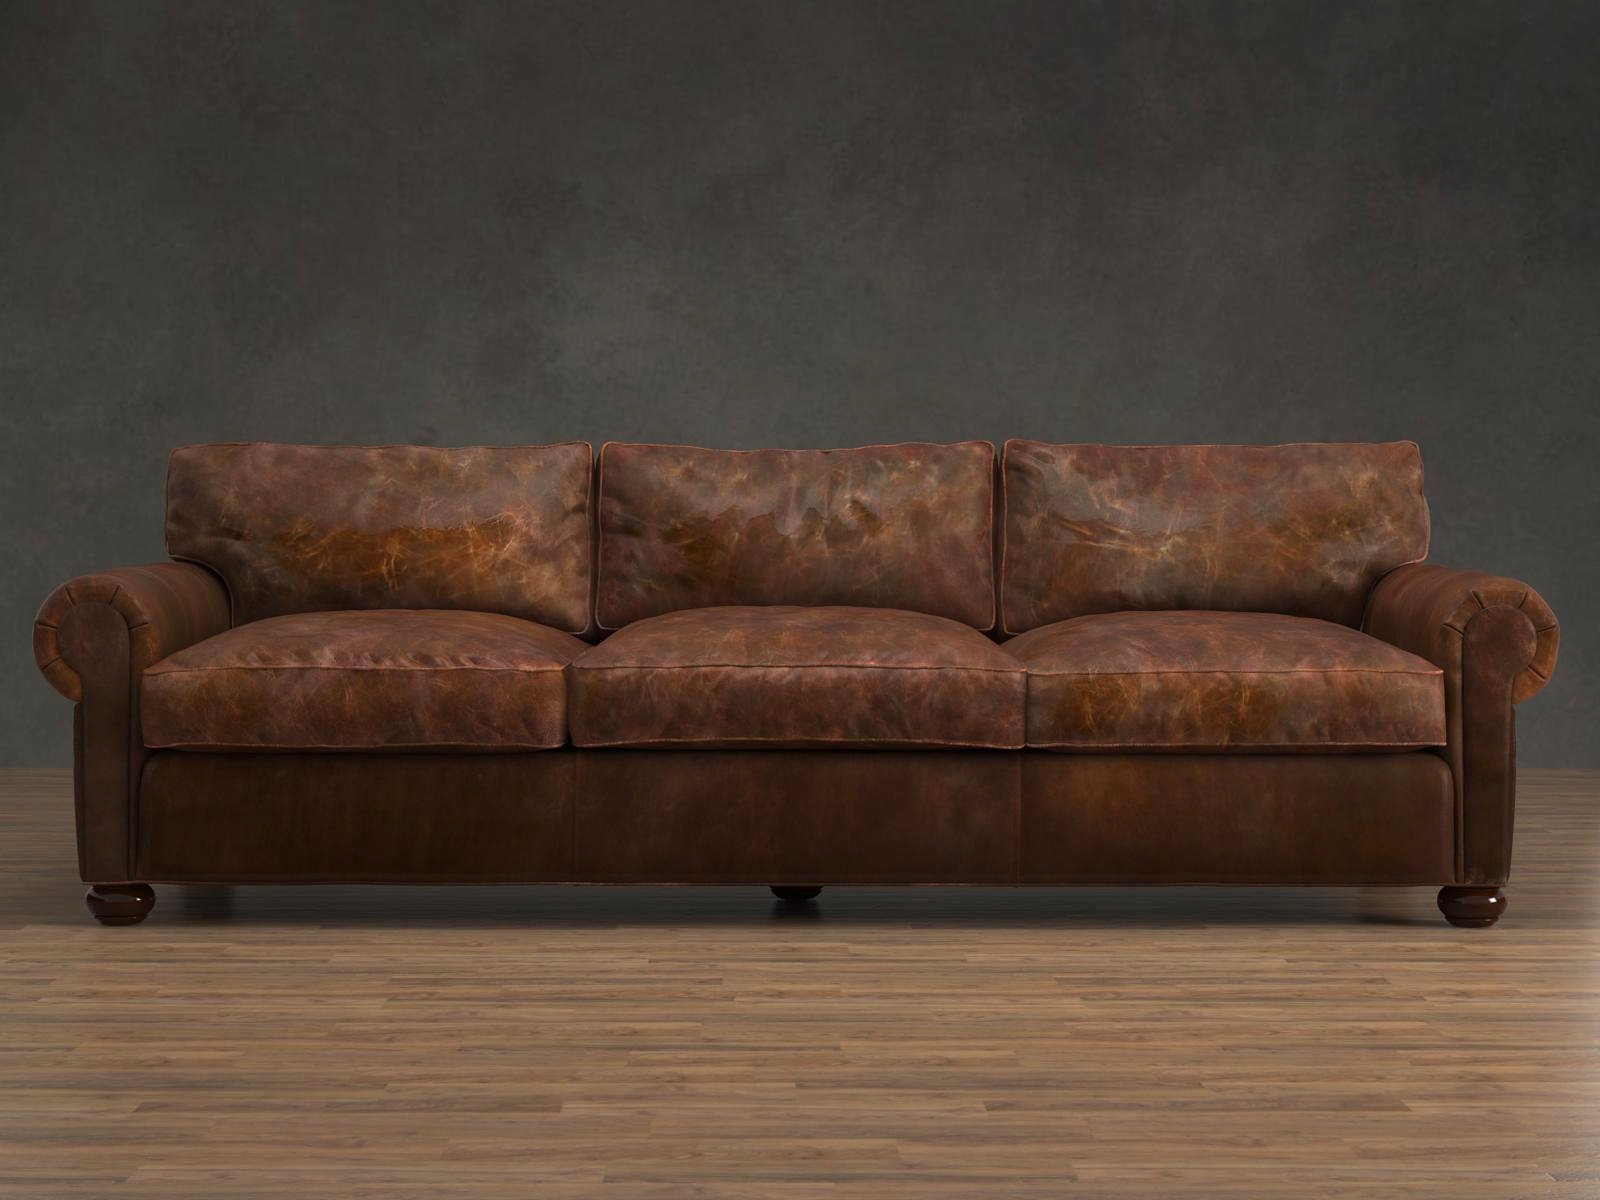 tindall 96 leather sofa wood chair set quot lancaster 3d model restoration hardware